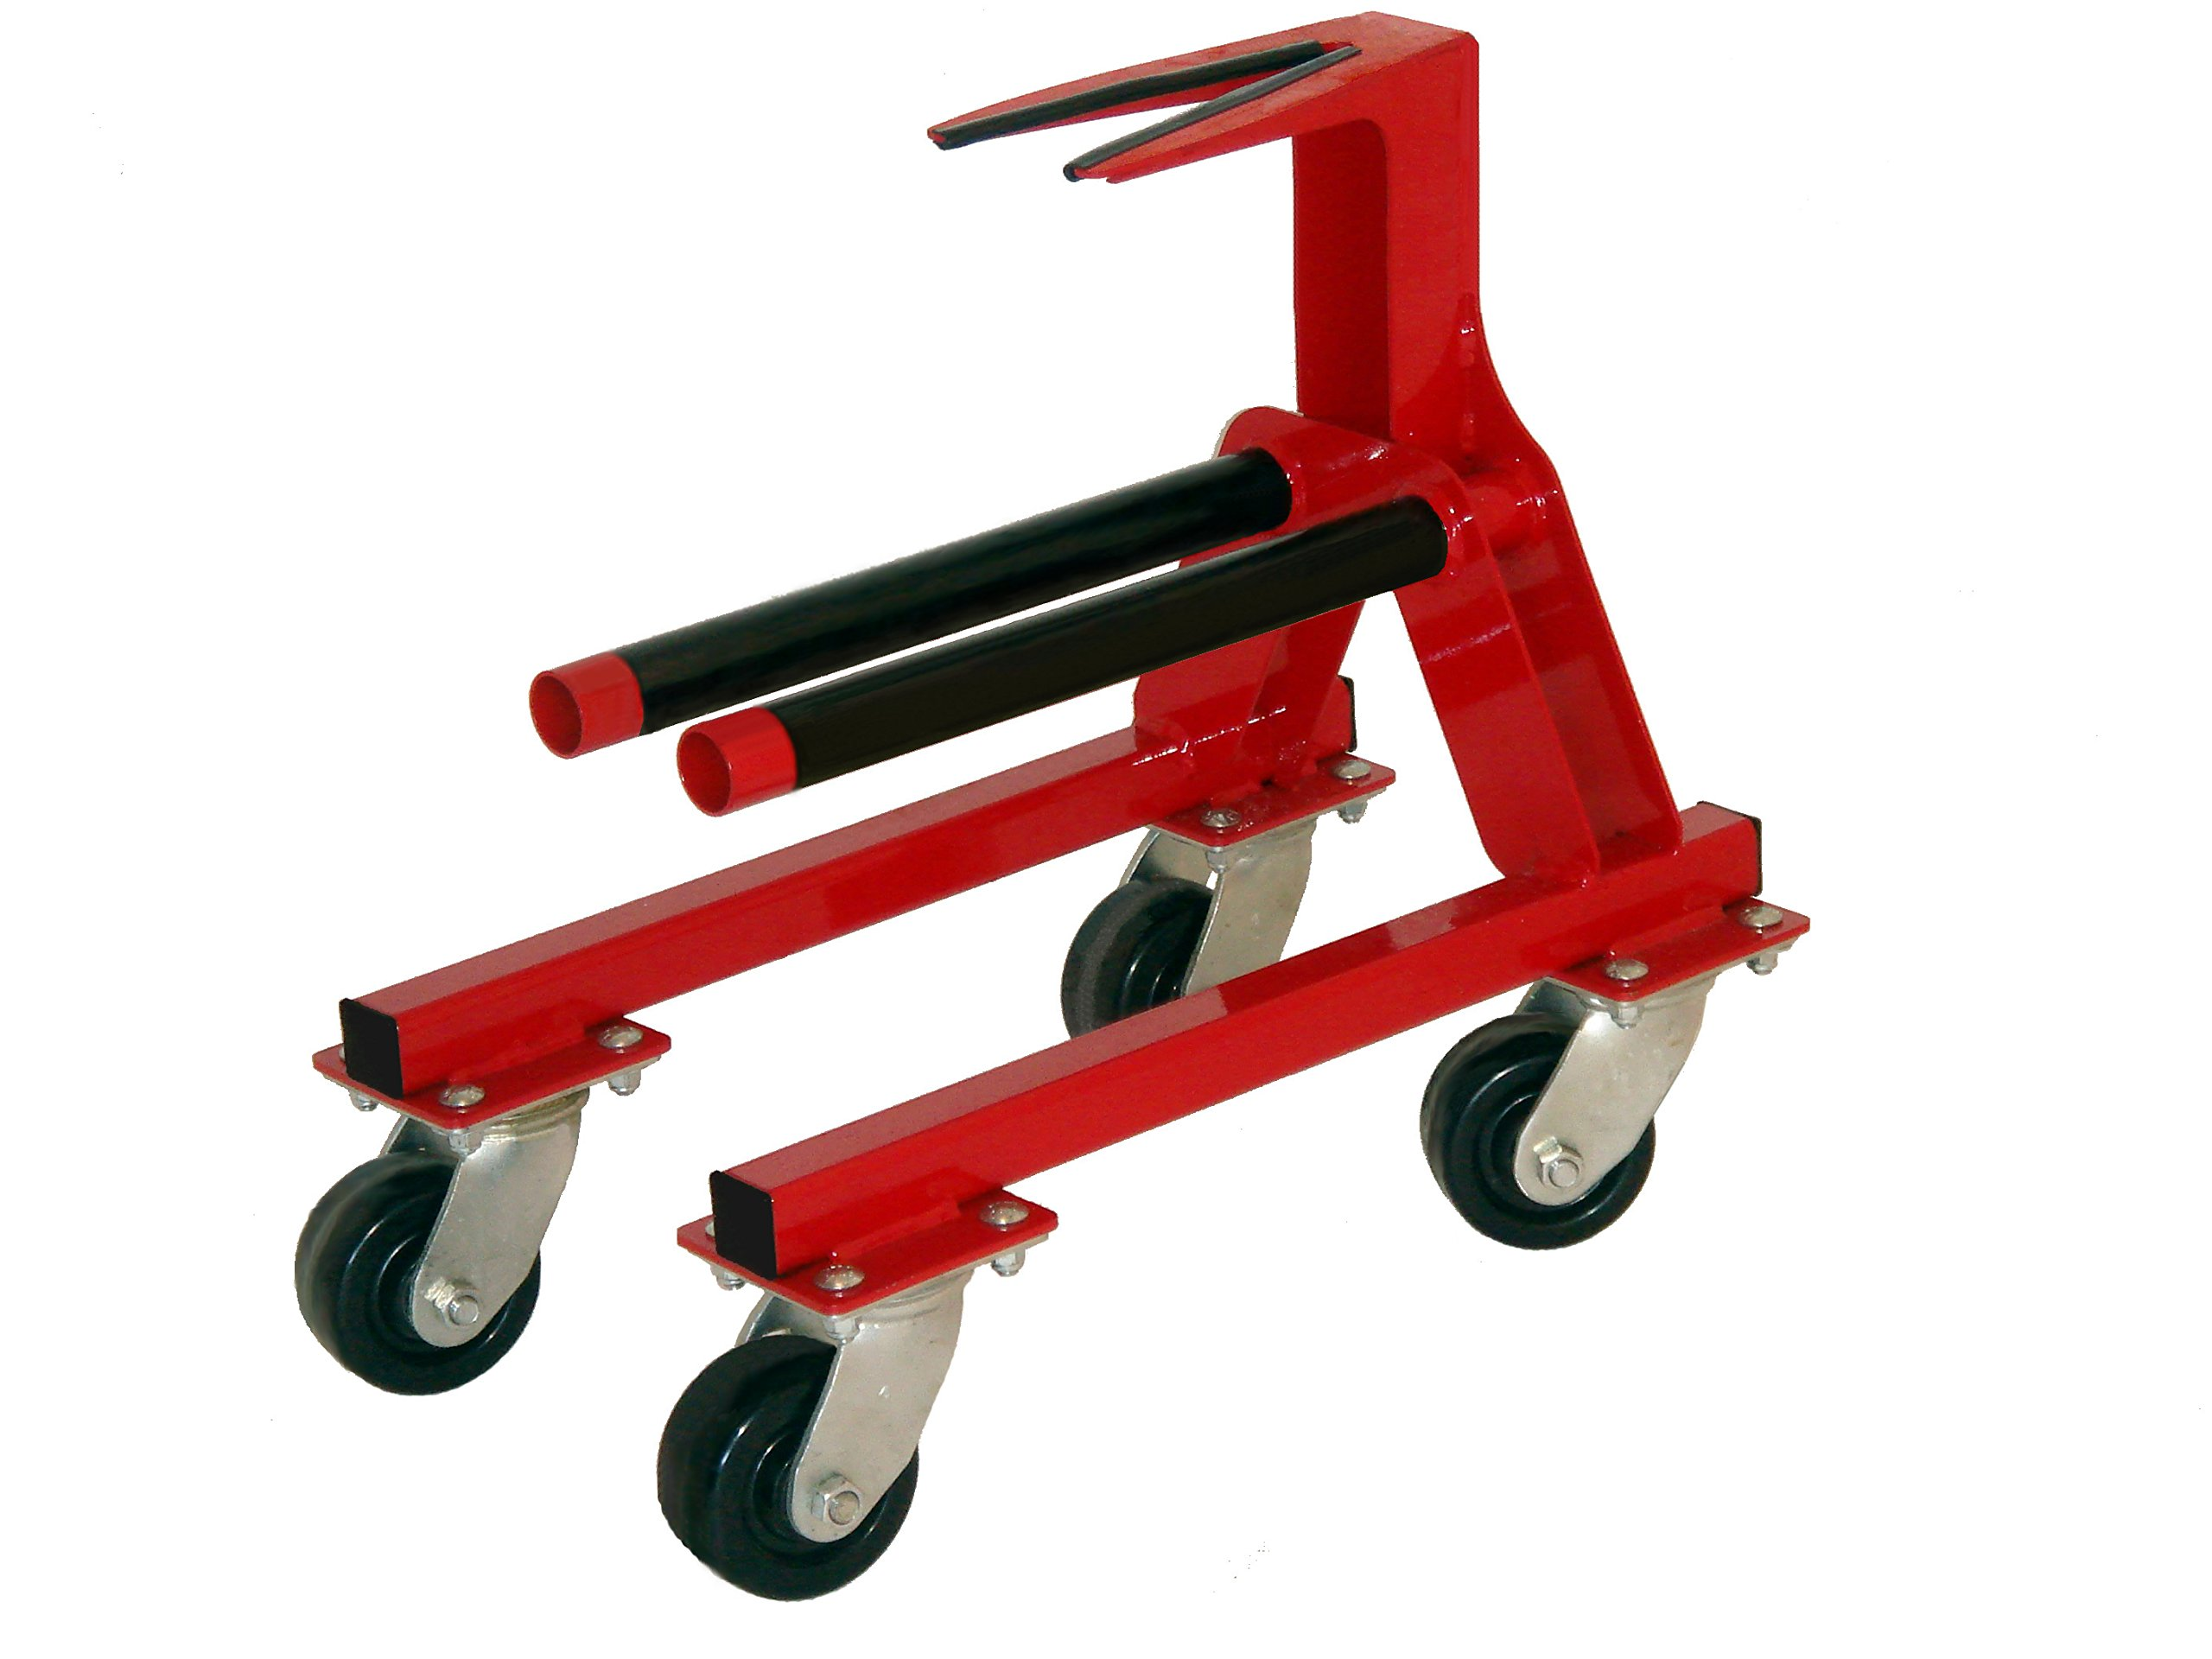 Sternmaster Marine Tools Single Outdrive/Lower Unit Rolling Service Cart fits I/O and Outboard Lower Units, Made in The USA by Sternmaster Marine Tools